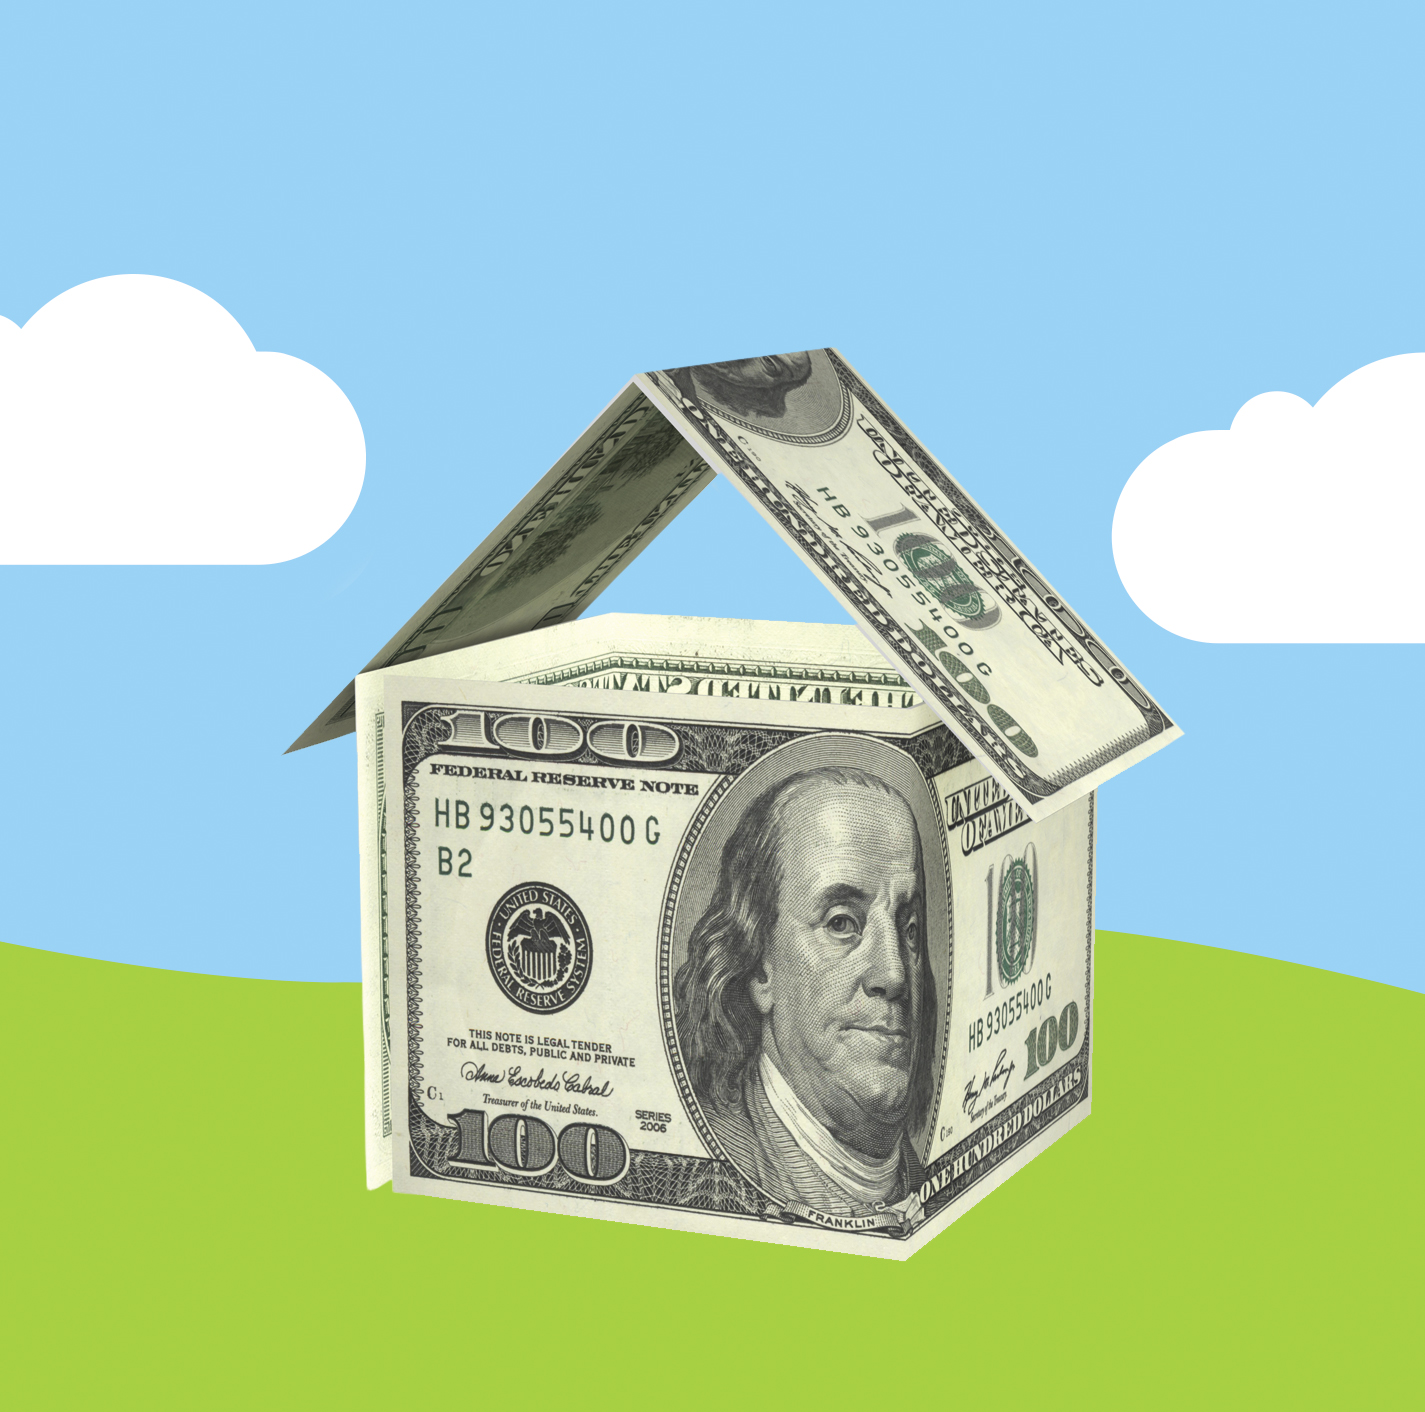 Illustration: house made from money